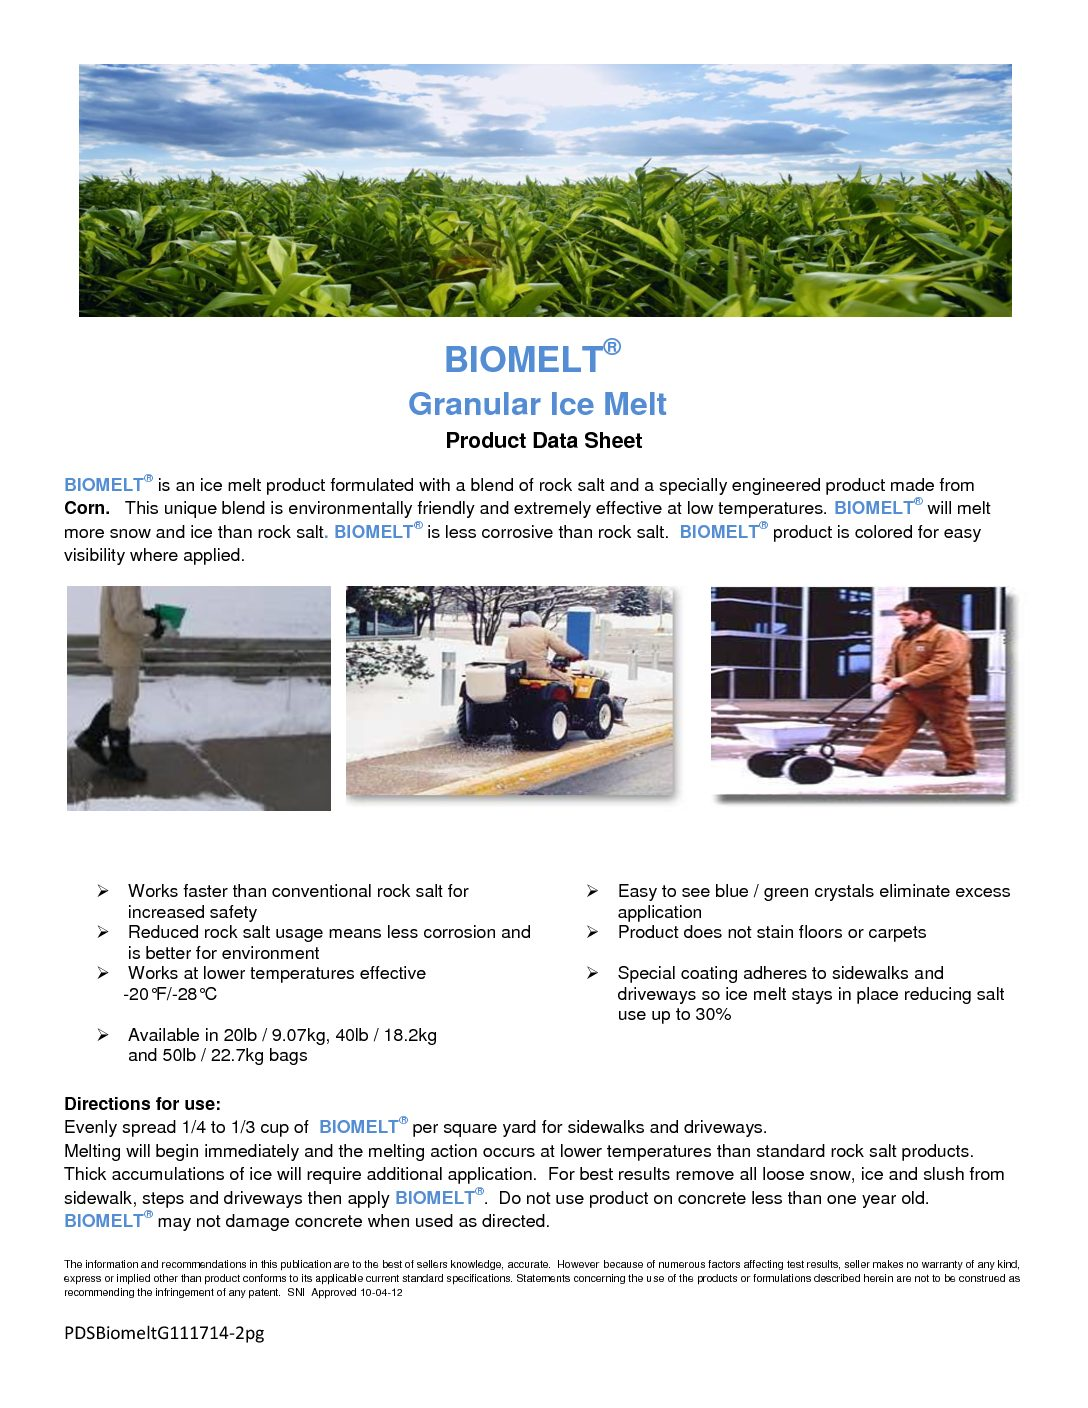 BioMelt Product Data Sheet